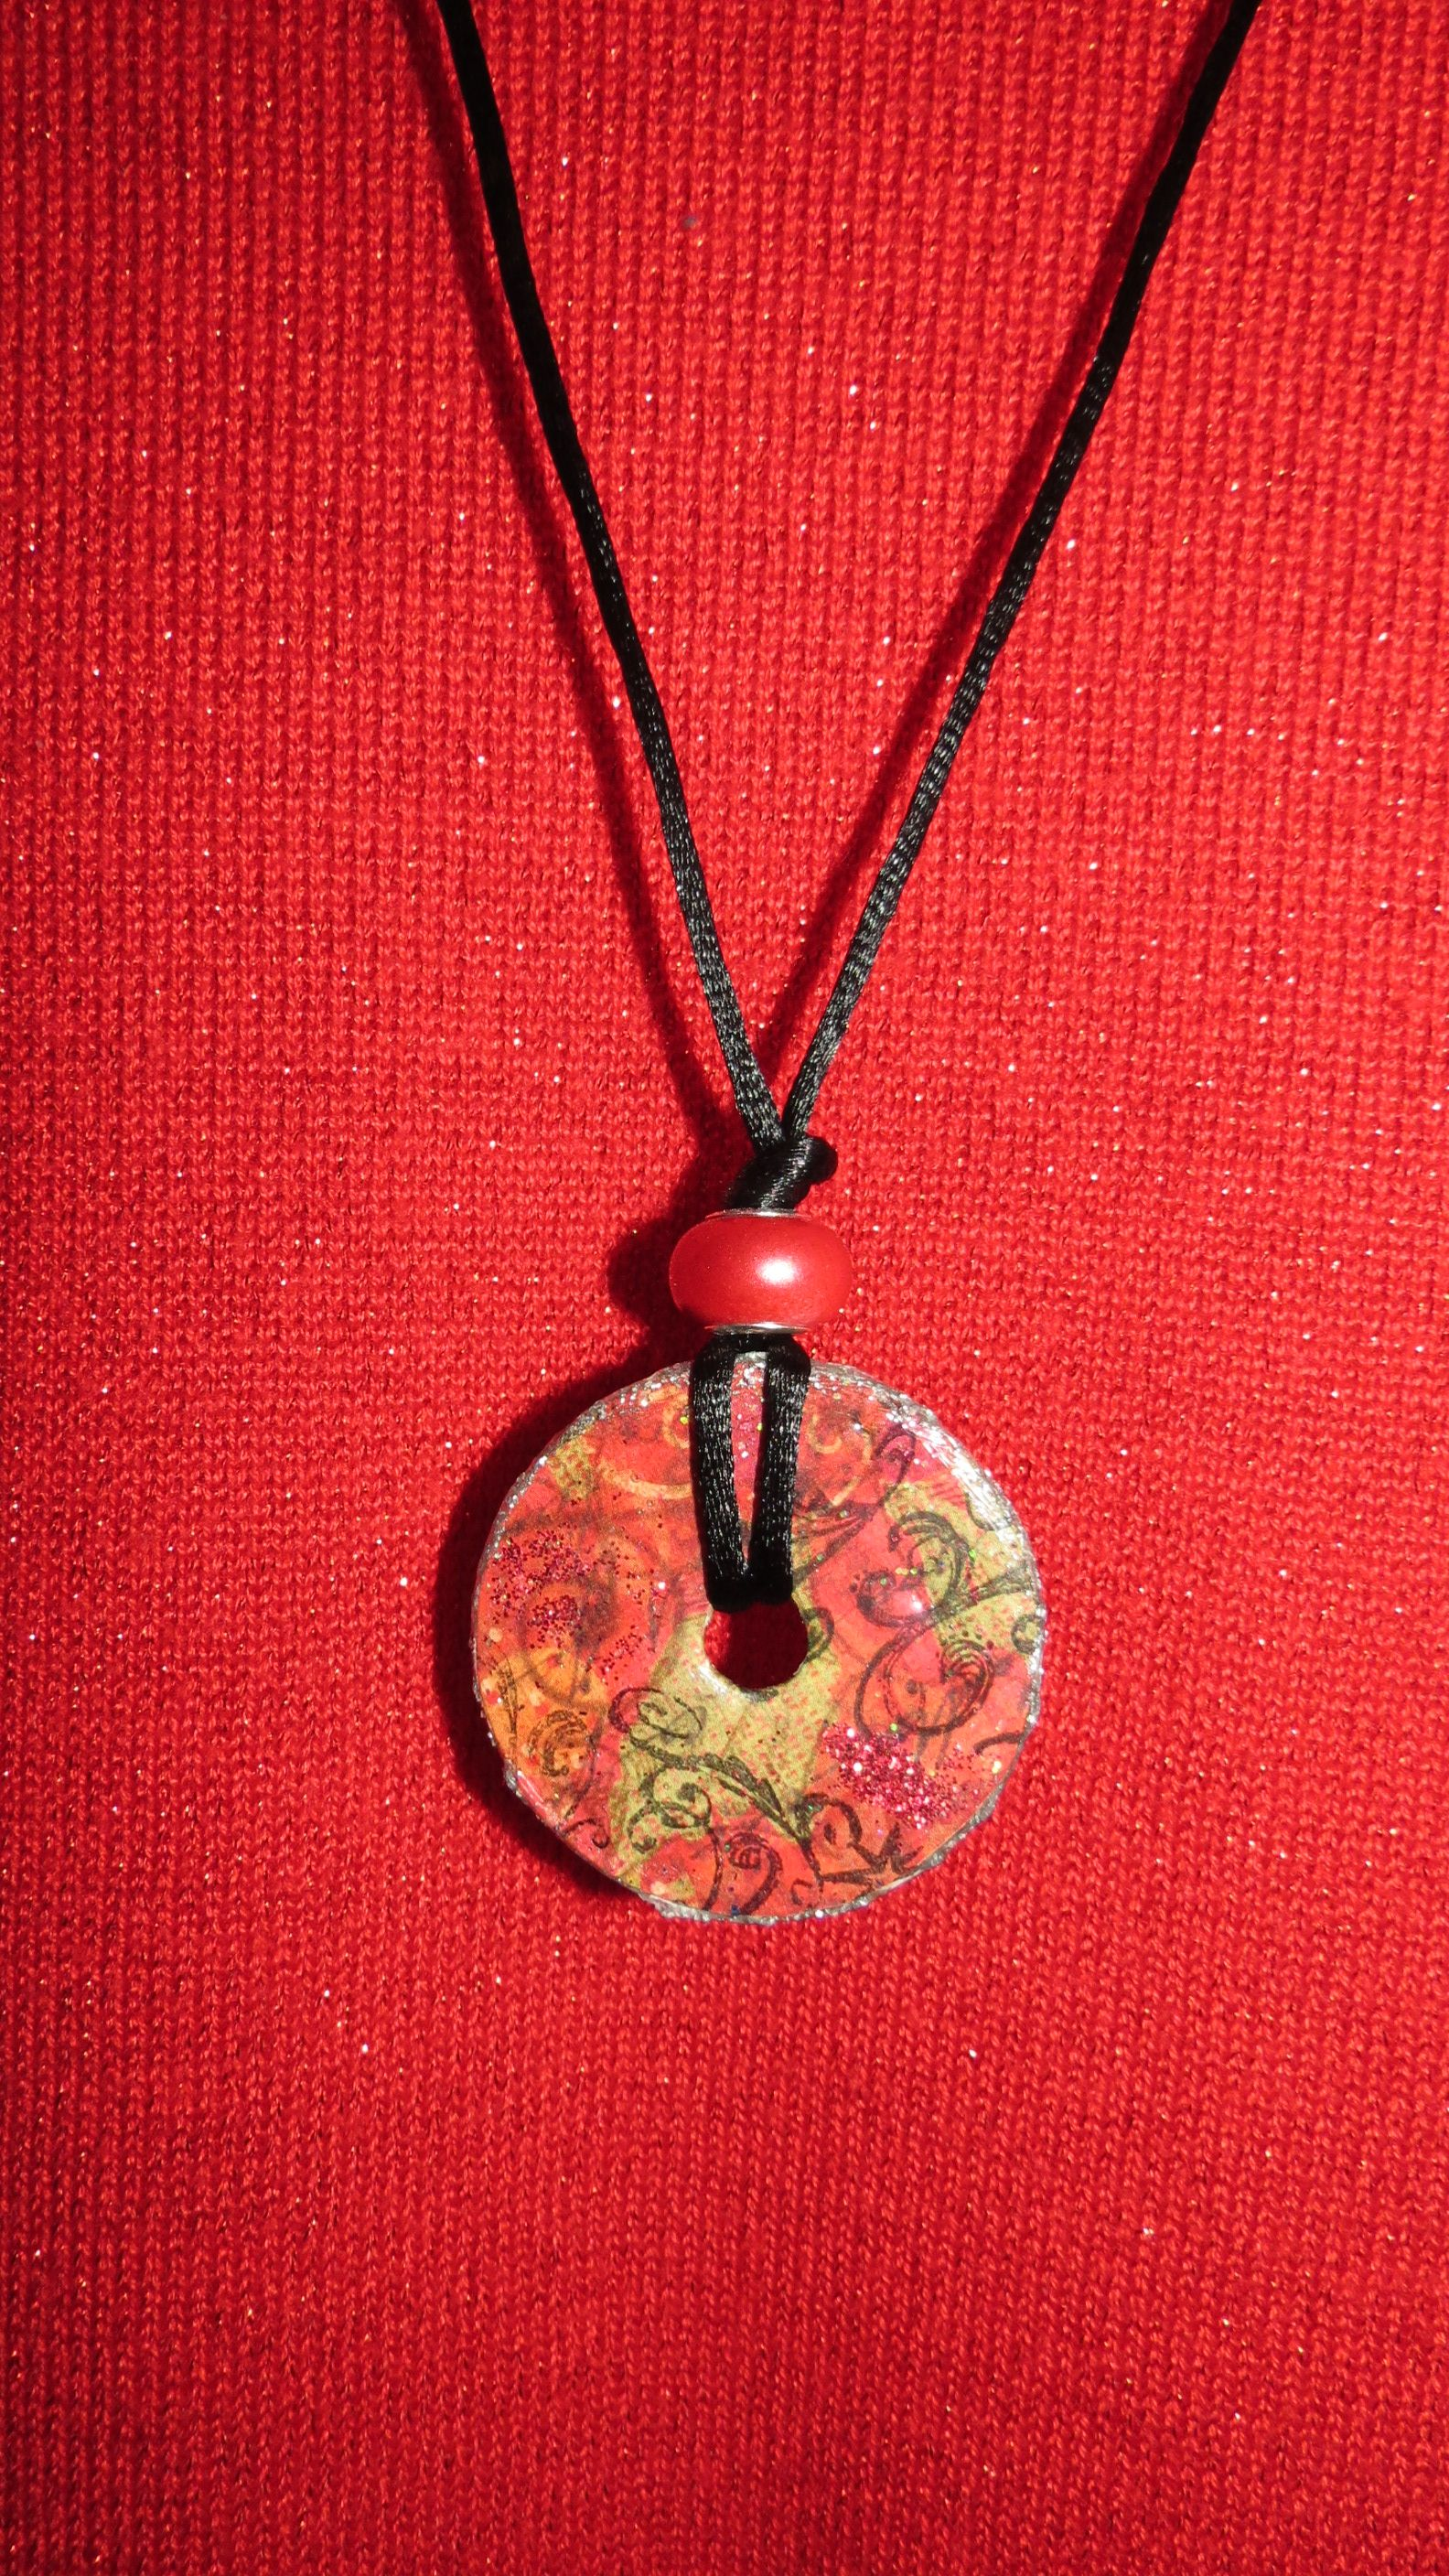 washer necklaces crafts